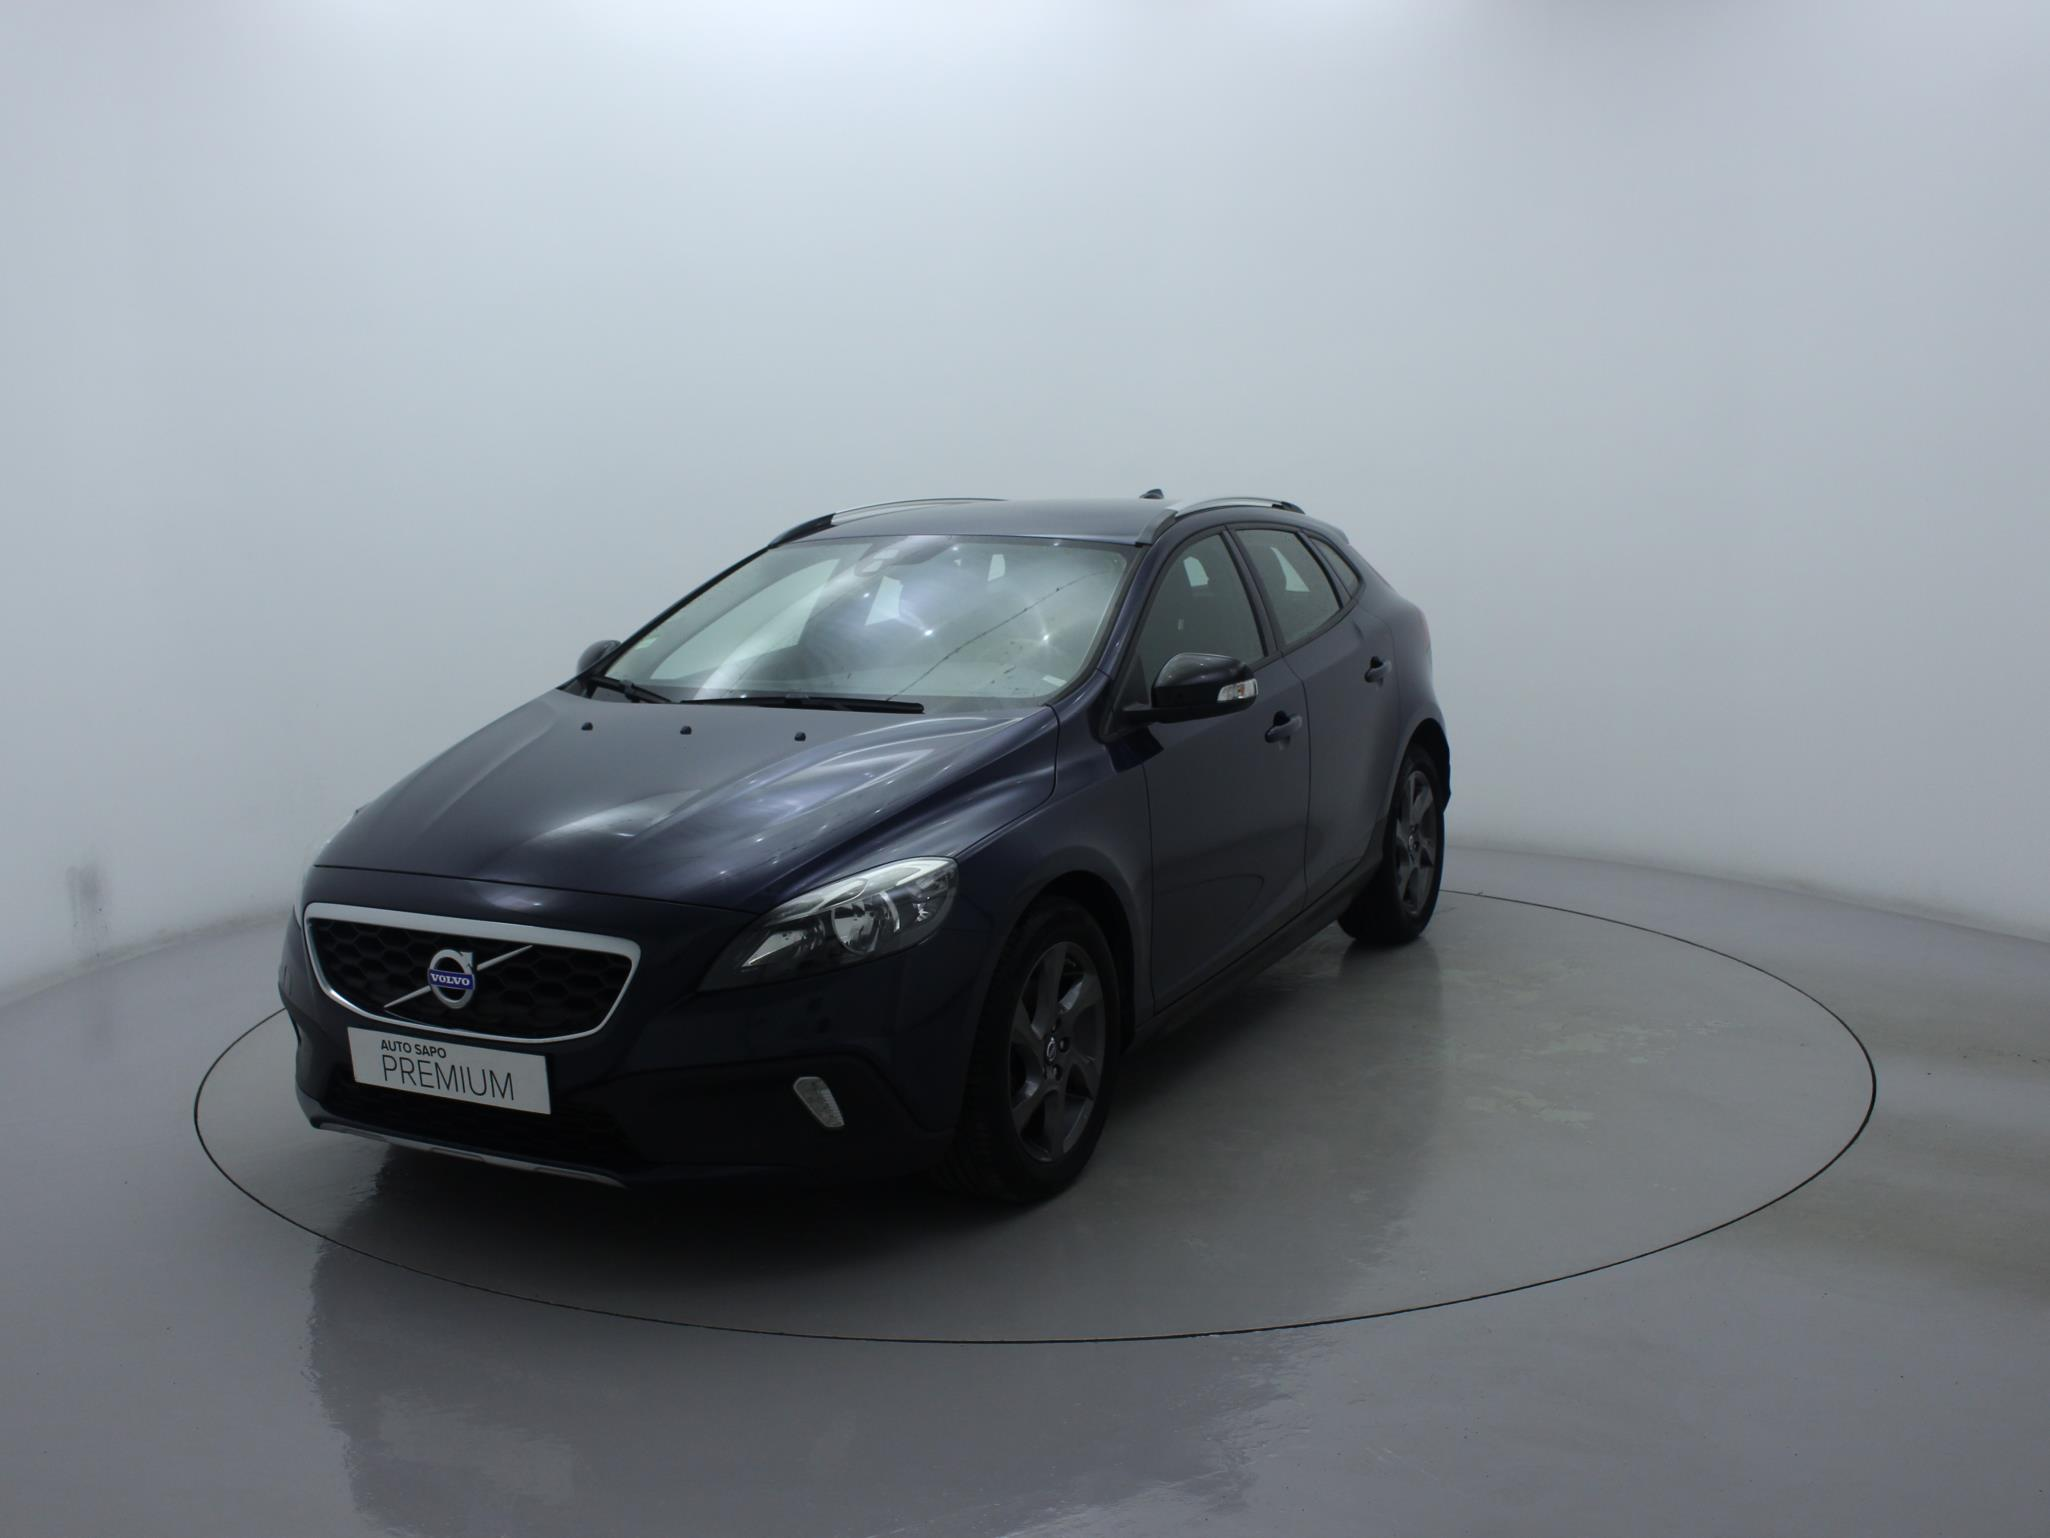 Volvo V40 Cross Country 1.6 D2 Kinetic (115cv) (5p) (2012 a presente)